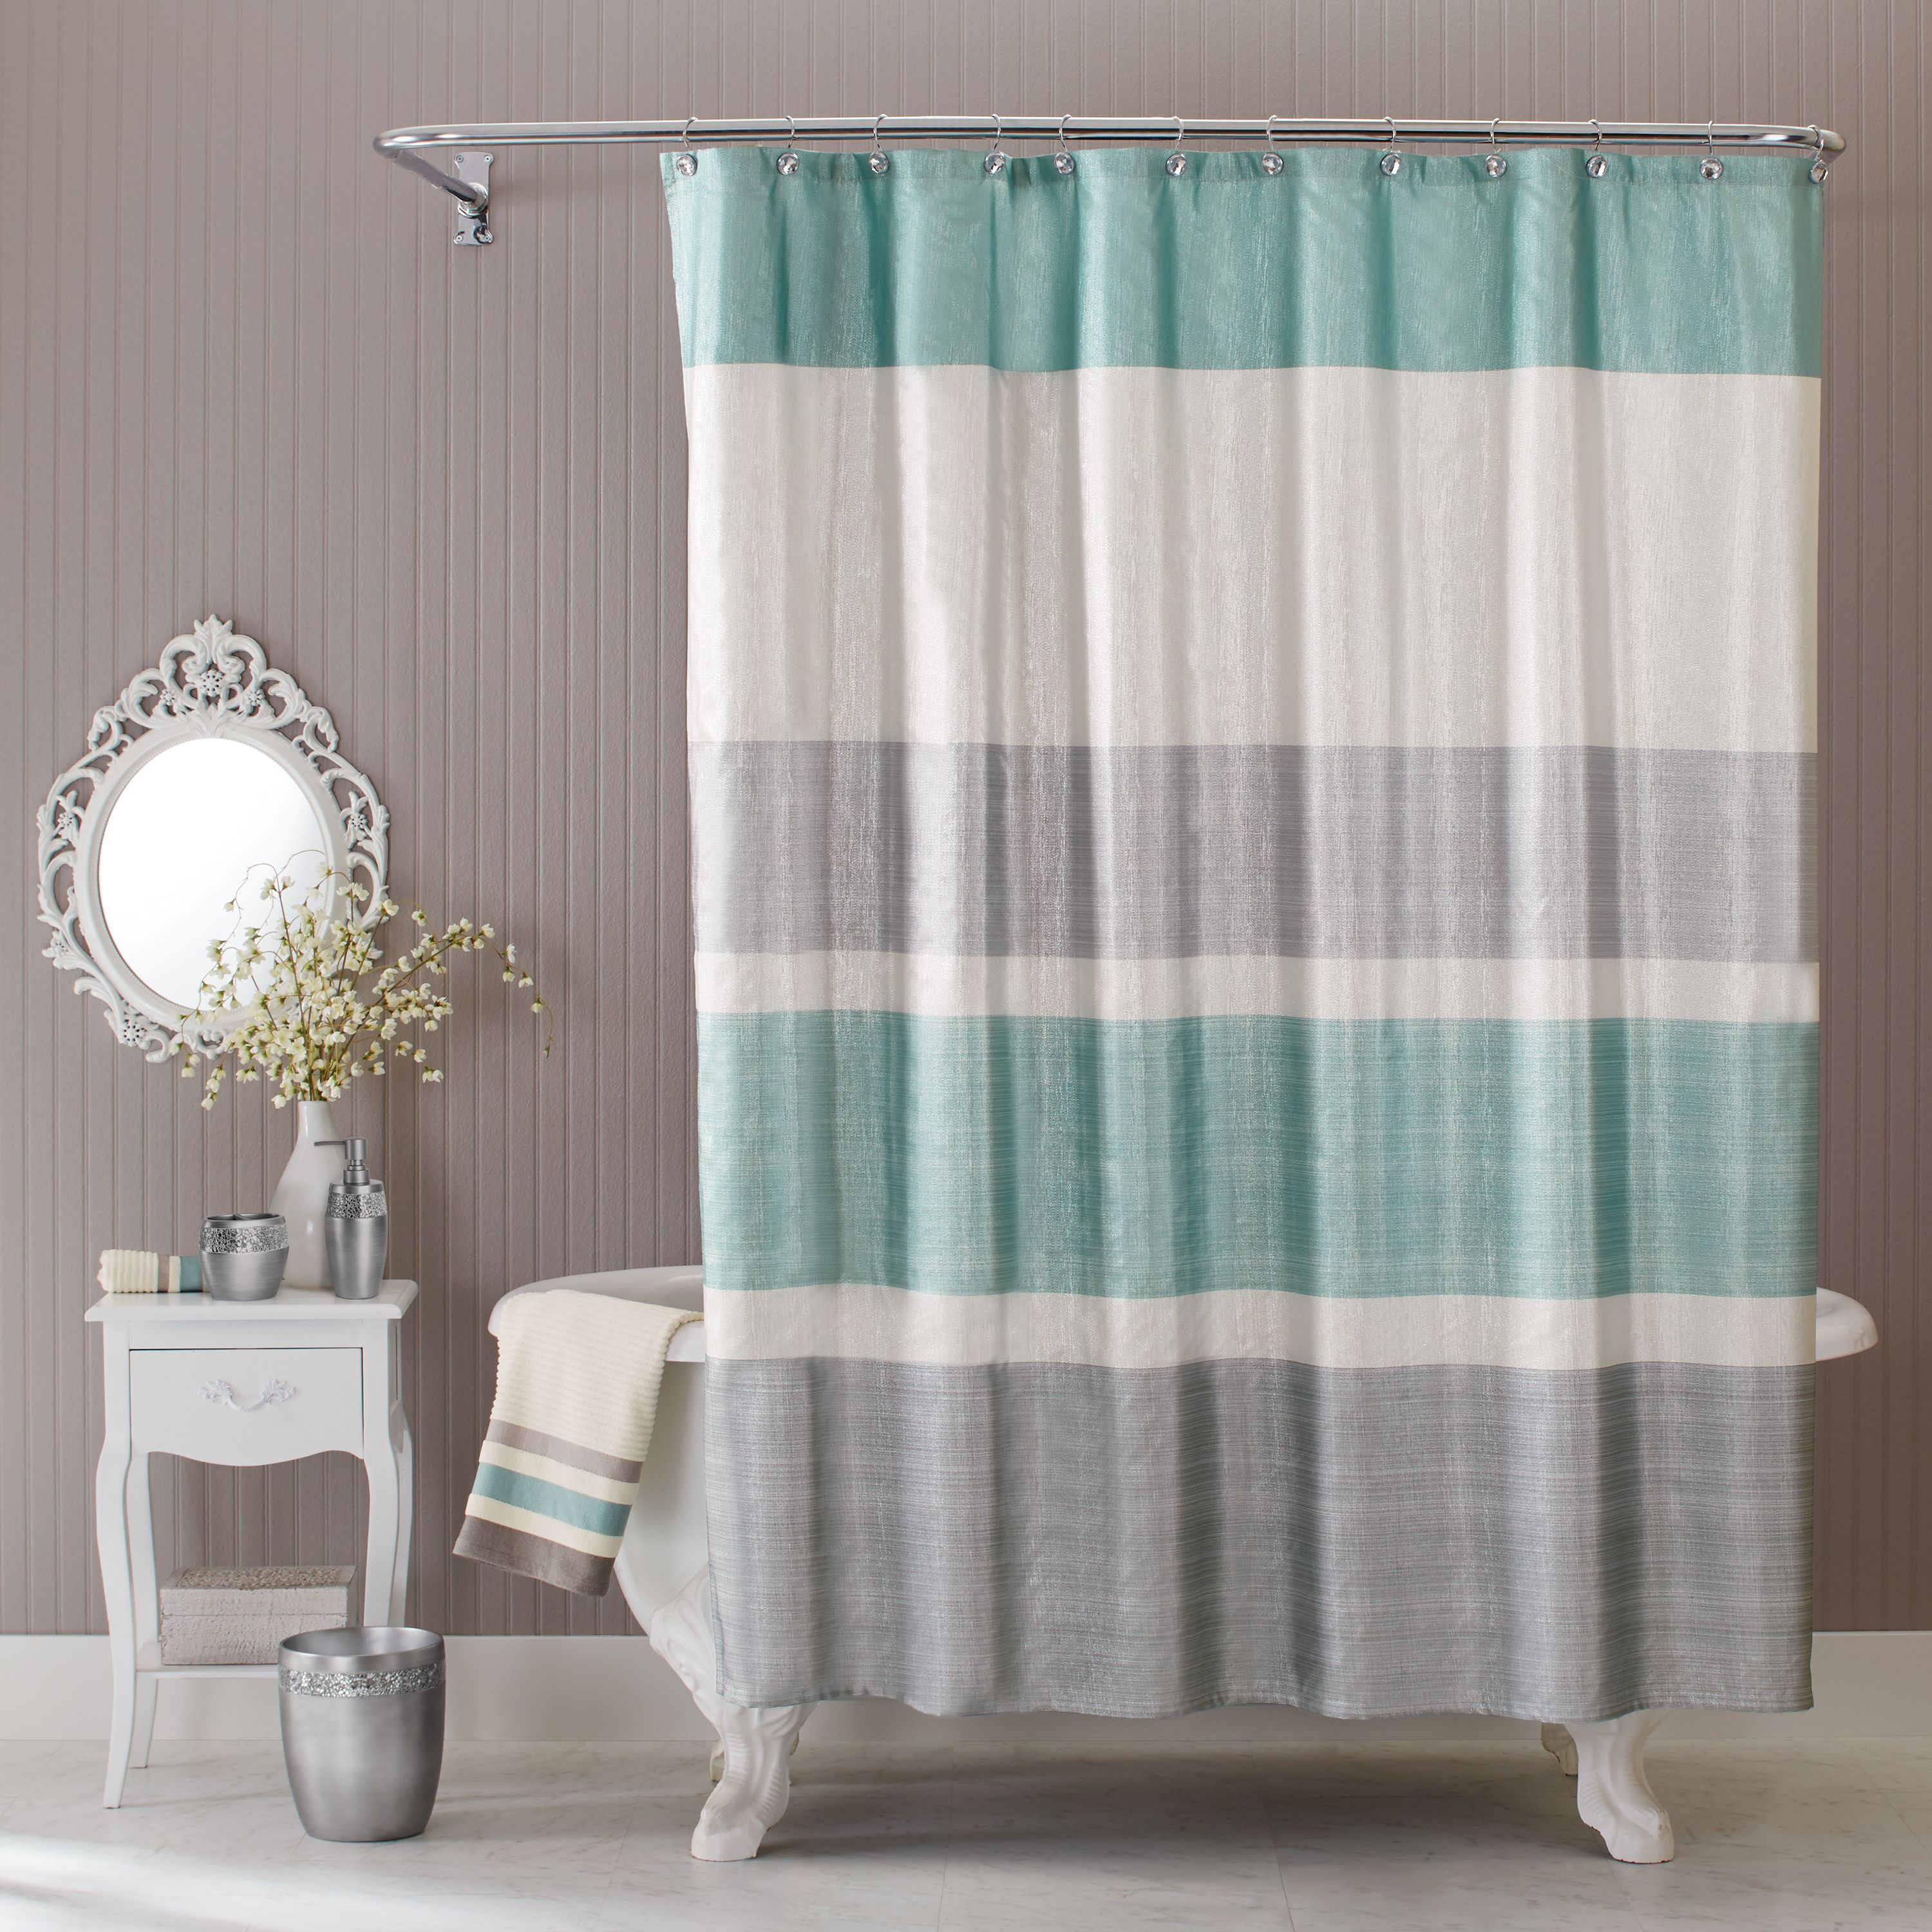 c33fffc103e5ad0ac7160b2782dee300 - Better Homes And Gardens Glimmer Shower Curtain